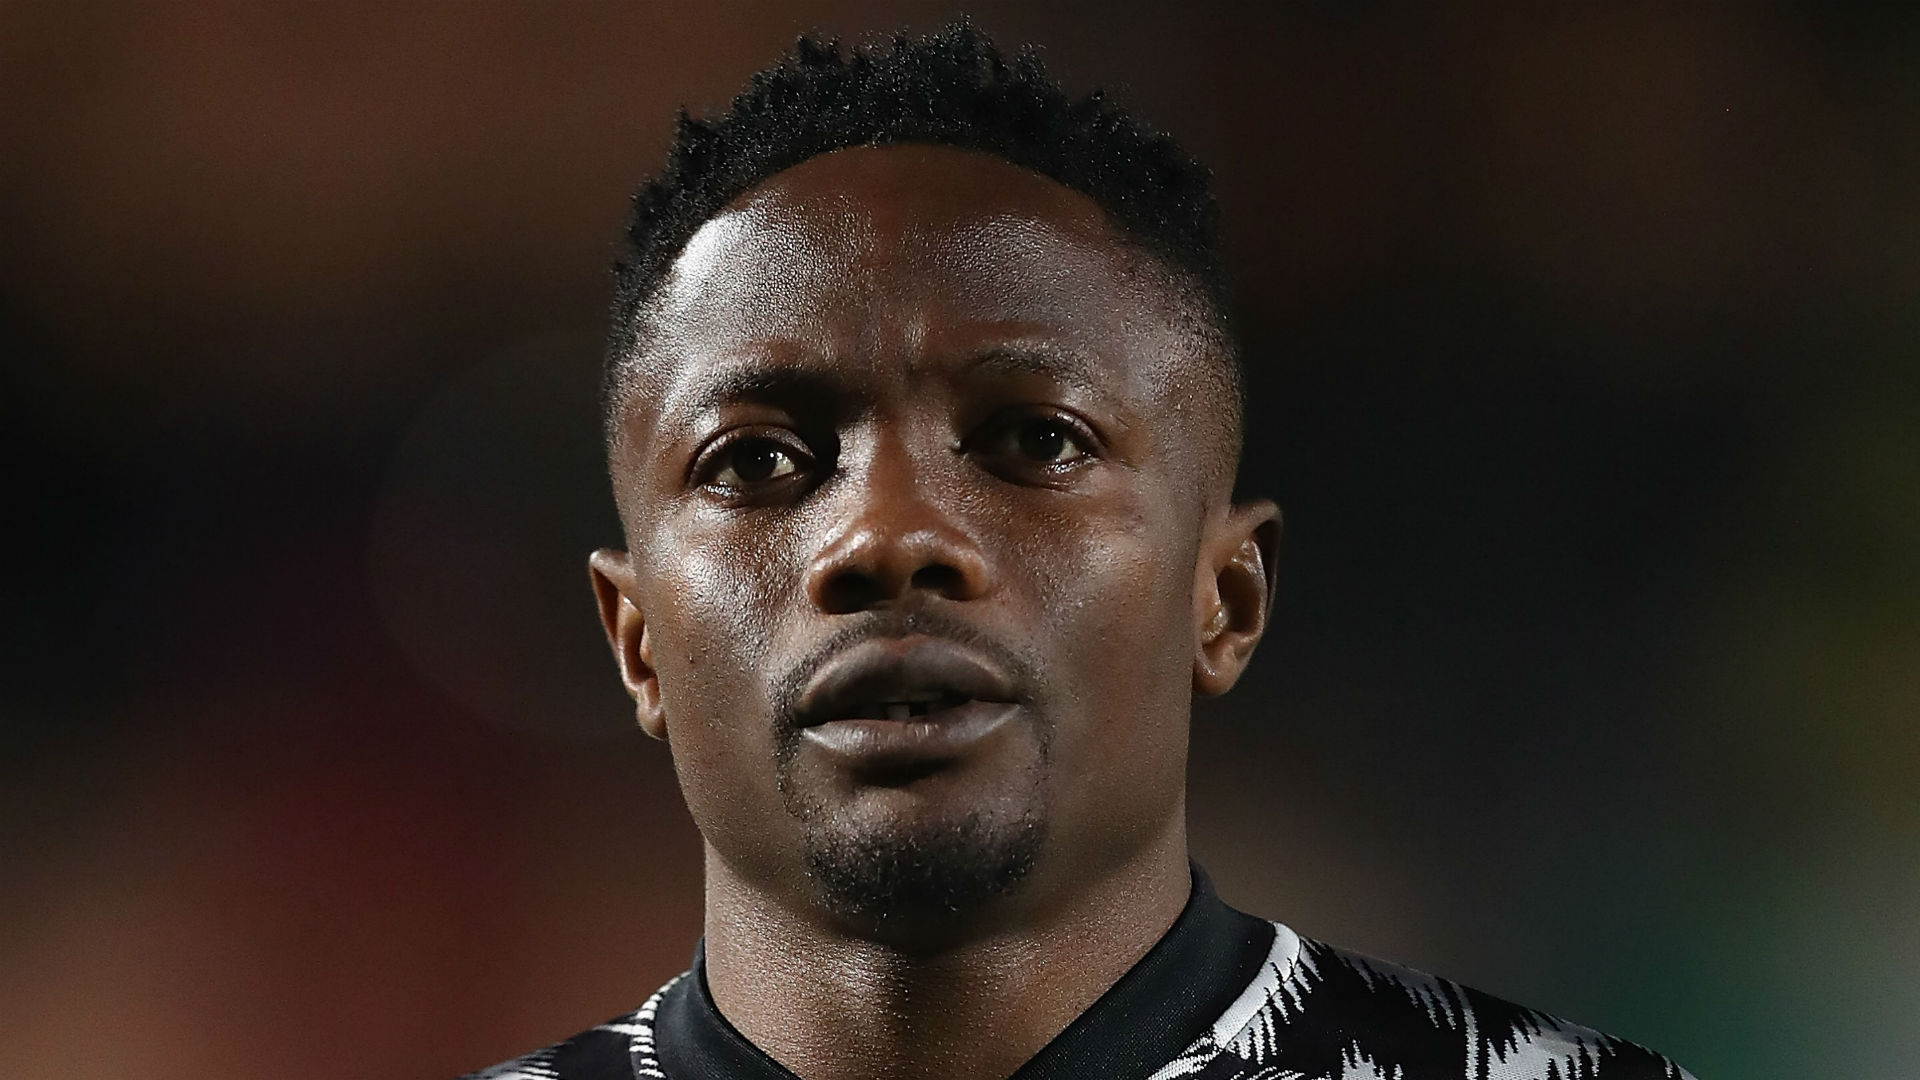 'Avoid fake news'- Nigeria captain Musa denies he has coronavirus